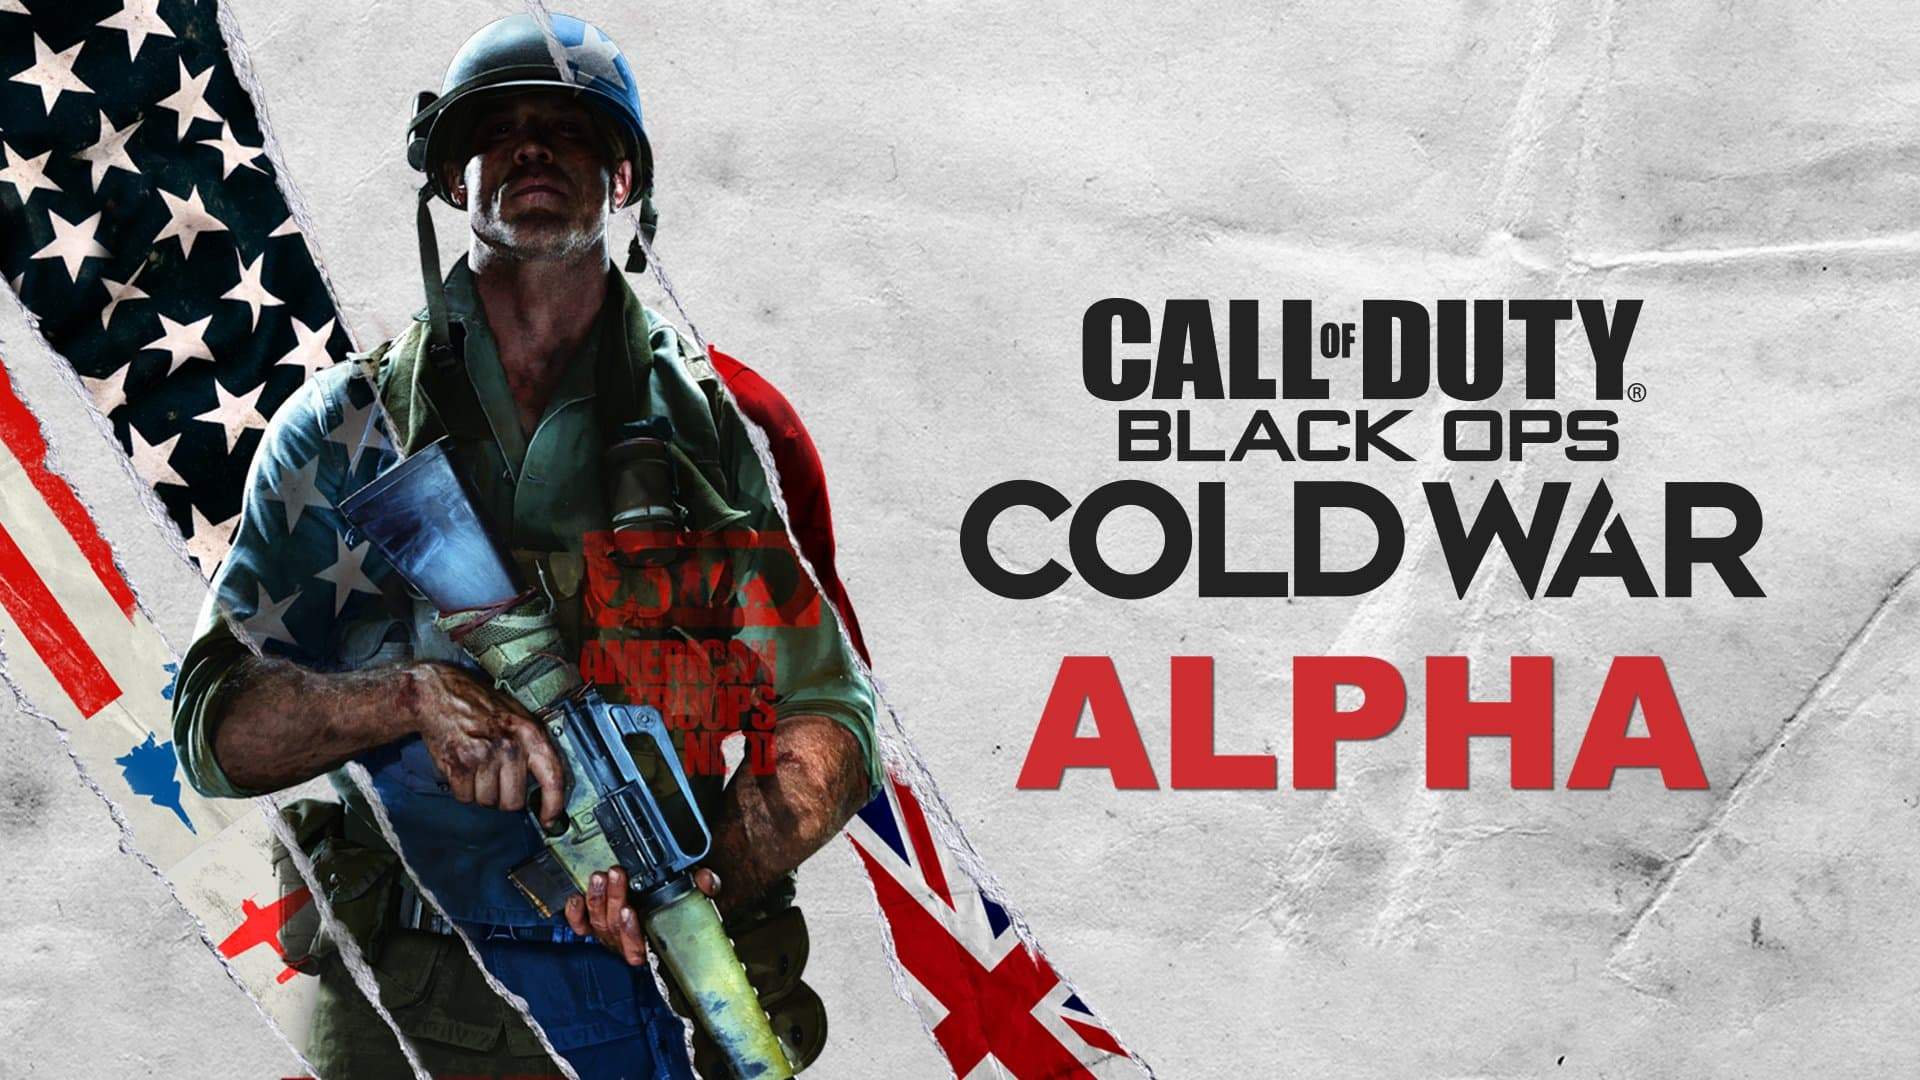 Preload The Call of Duty: Black Ops Cold War Alpha NOW On Playstation 4 – Alpha To Go Live 19-21 September AEST/NZST For Playstation 4 Owners